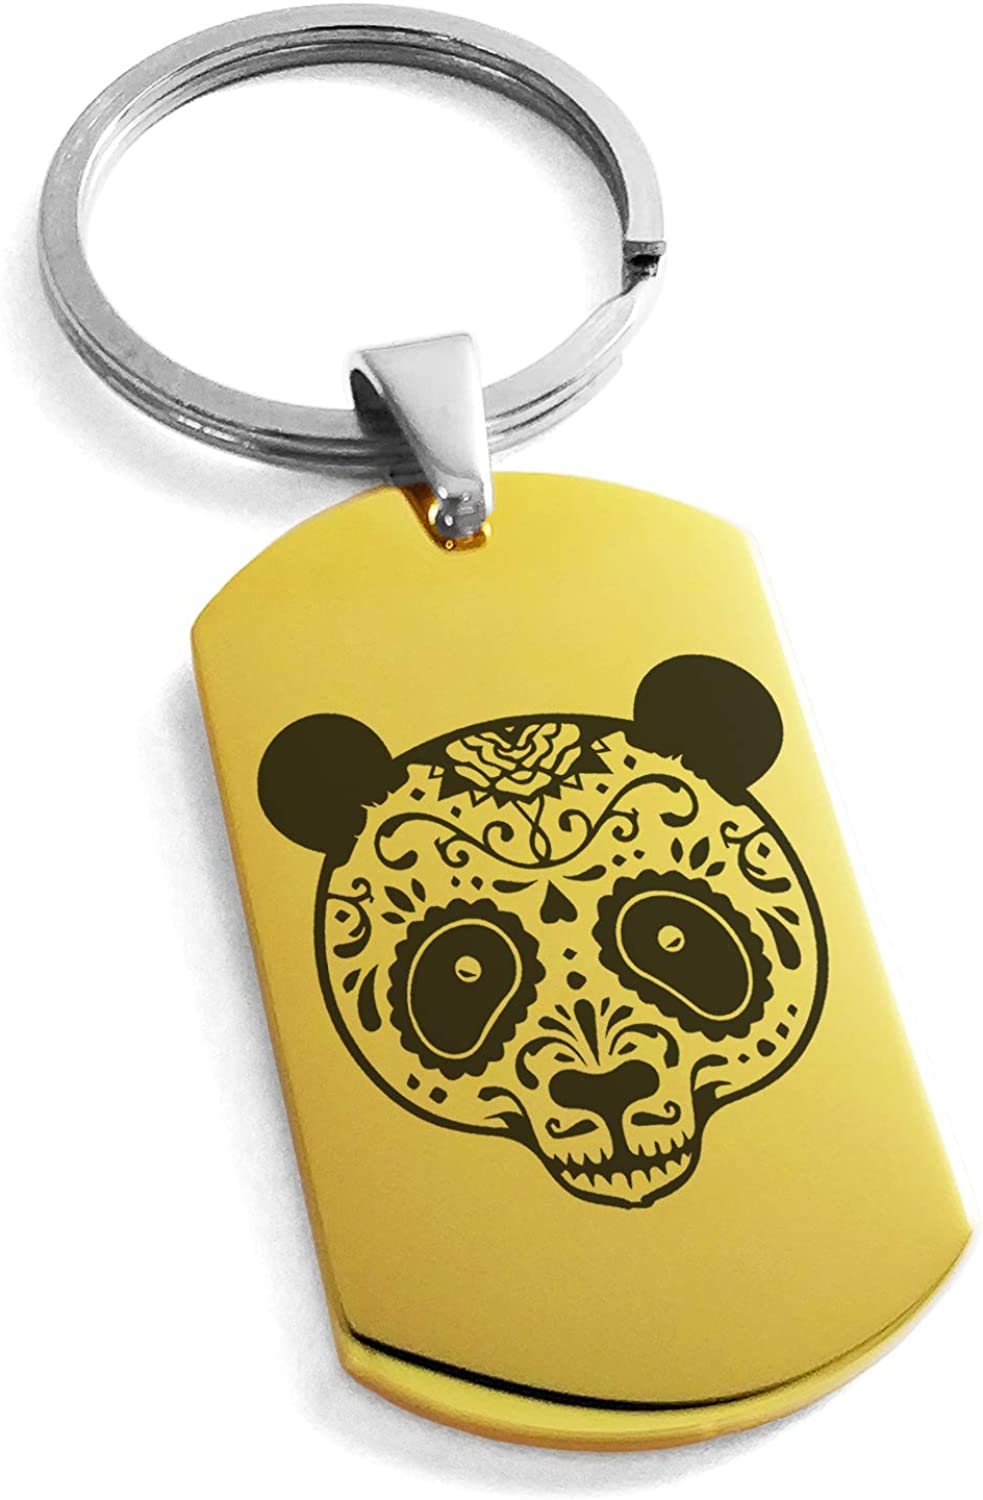 Tioneer Stainless Steel Day of The Dead Sugar Skull Panda Symbol Dog Tag Keychain Keyring